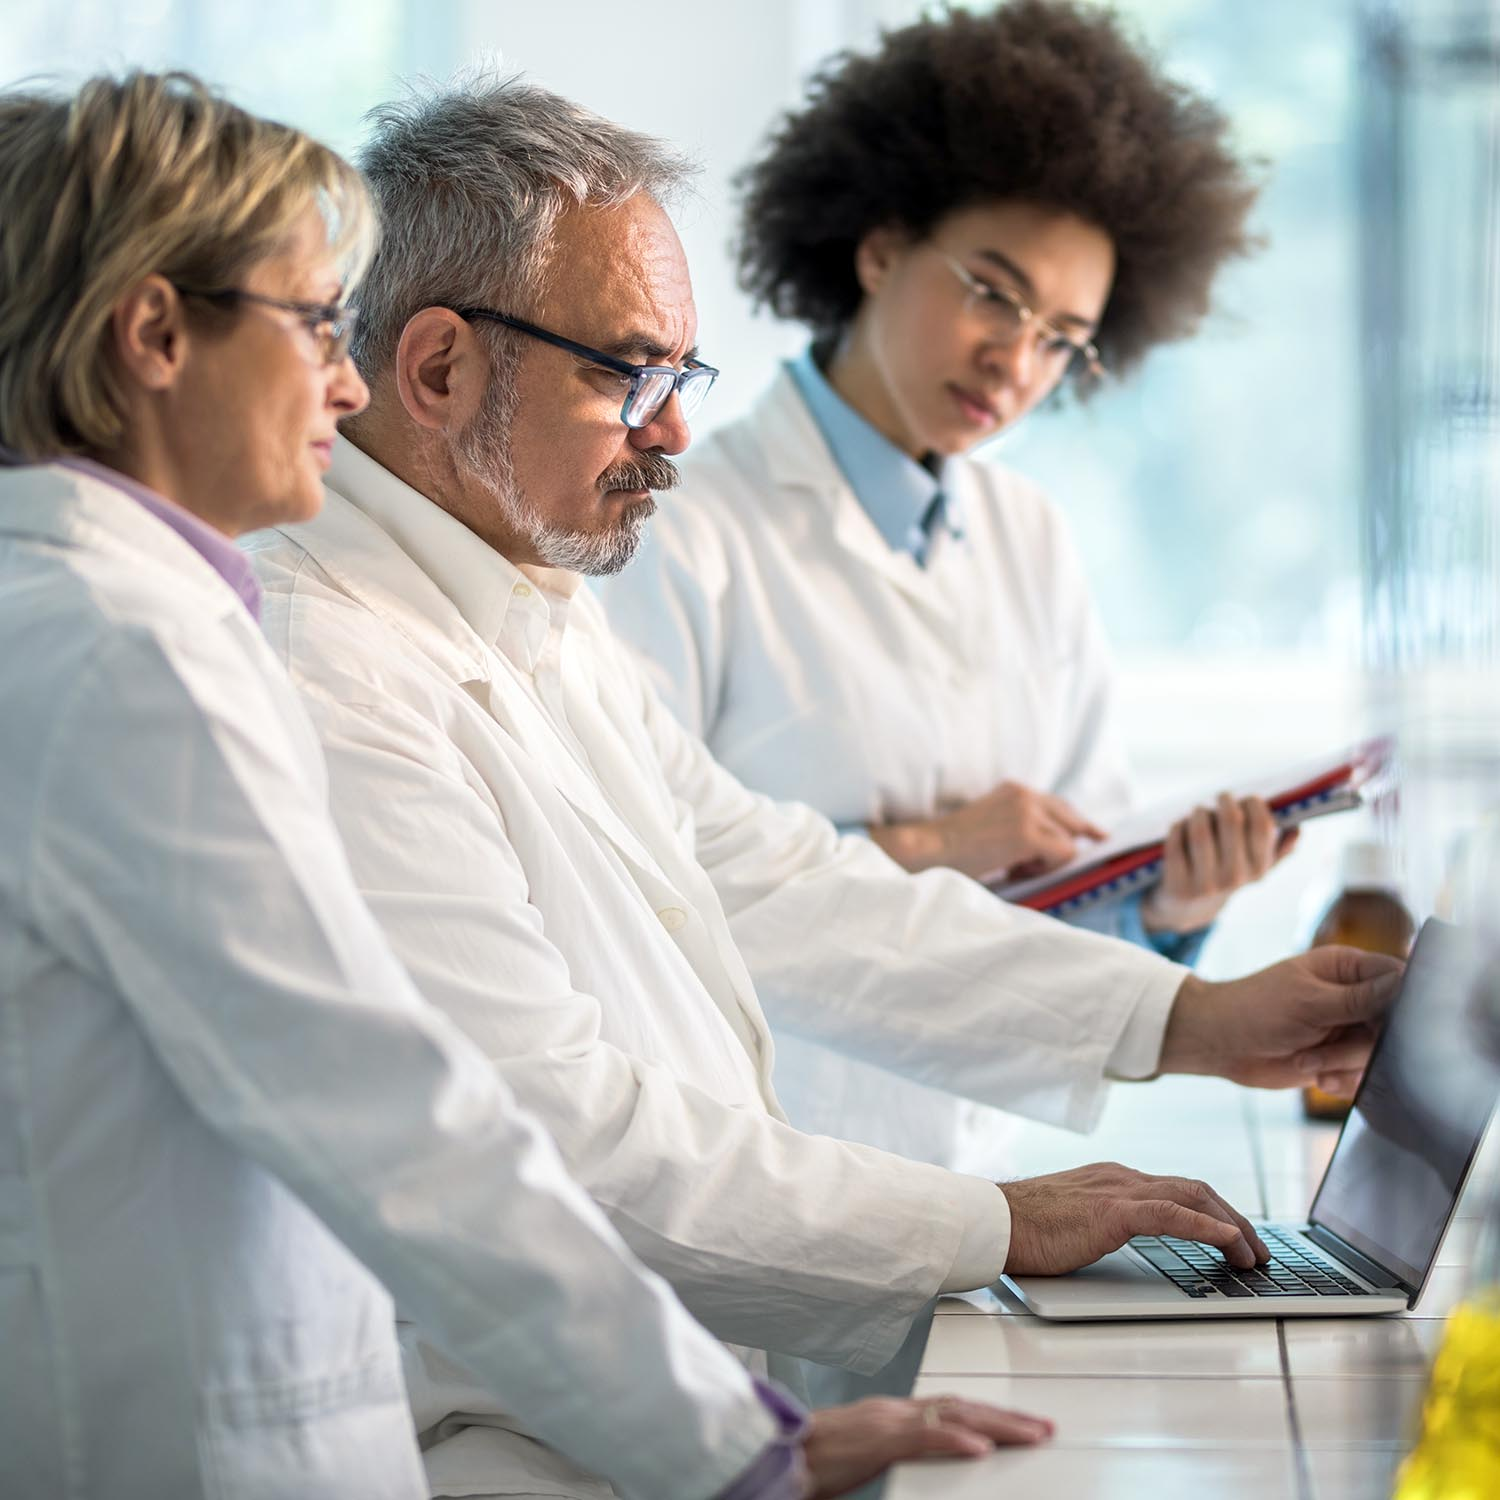 Three biochemists working on laptop in a laboratory. Focus is on mature man typing on laptop.